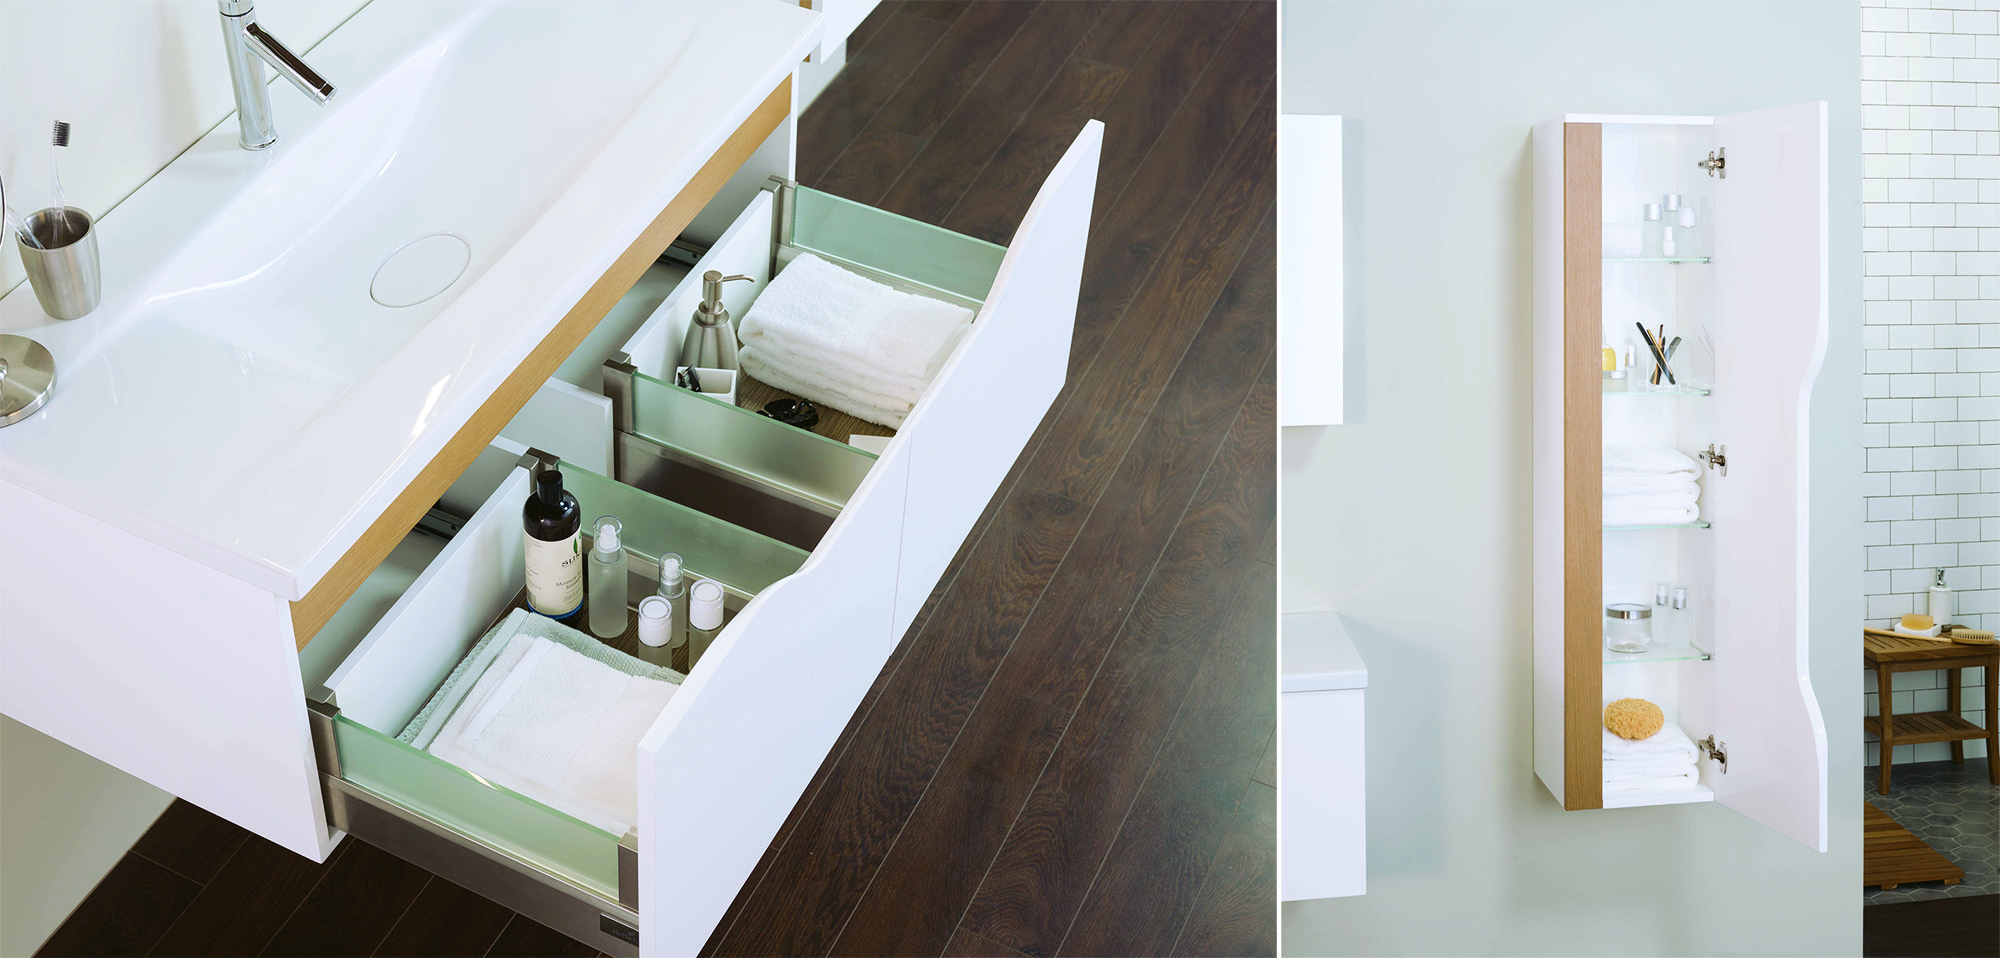 UNITY - bathroom furniture collection by Alexander Zhukovsky for Ronbow